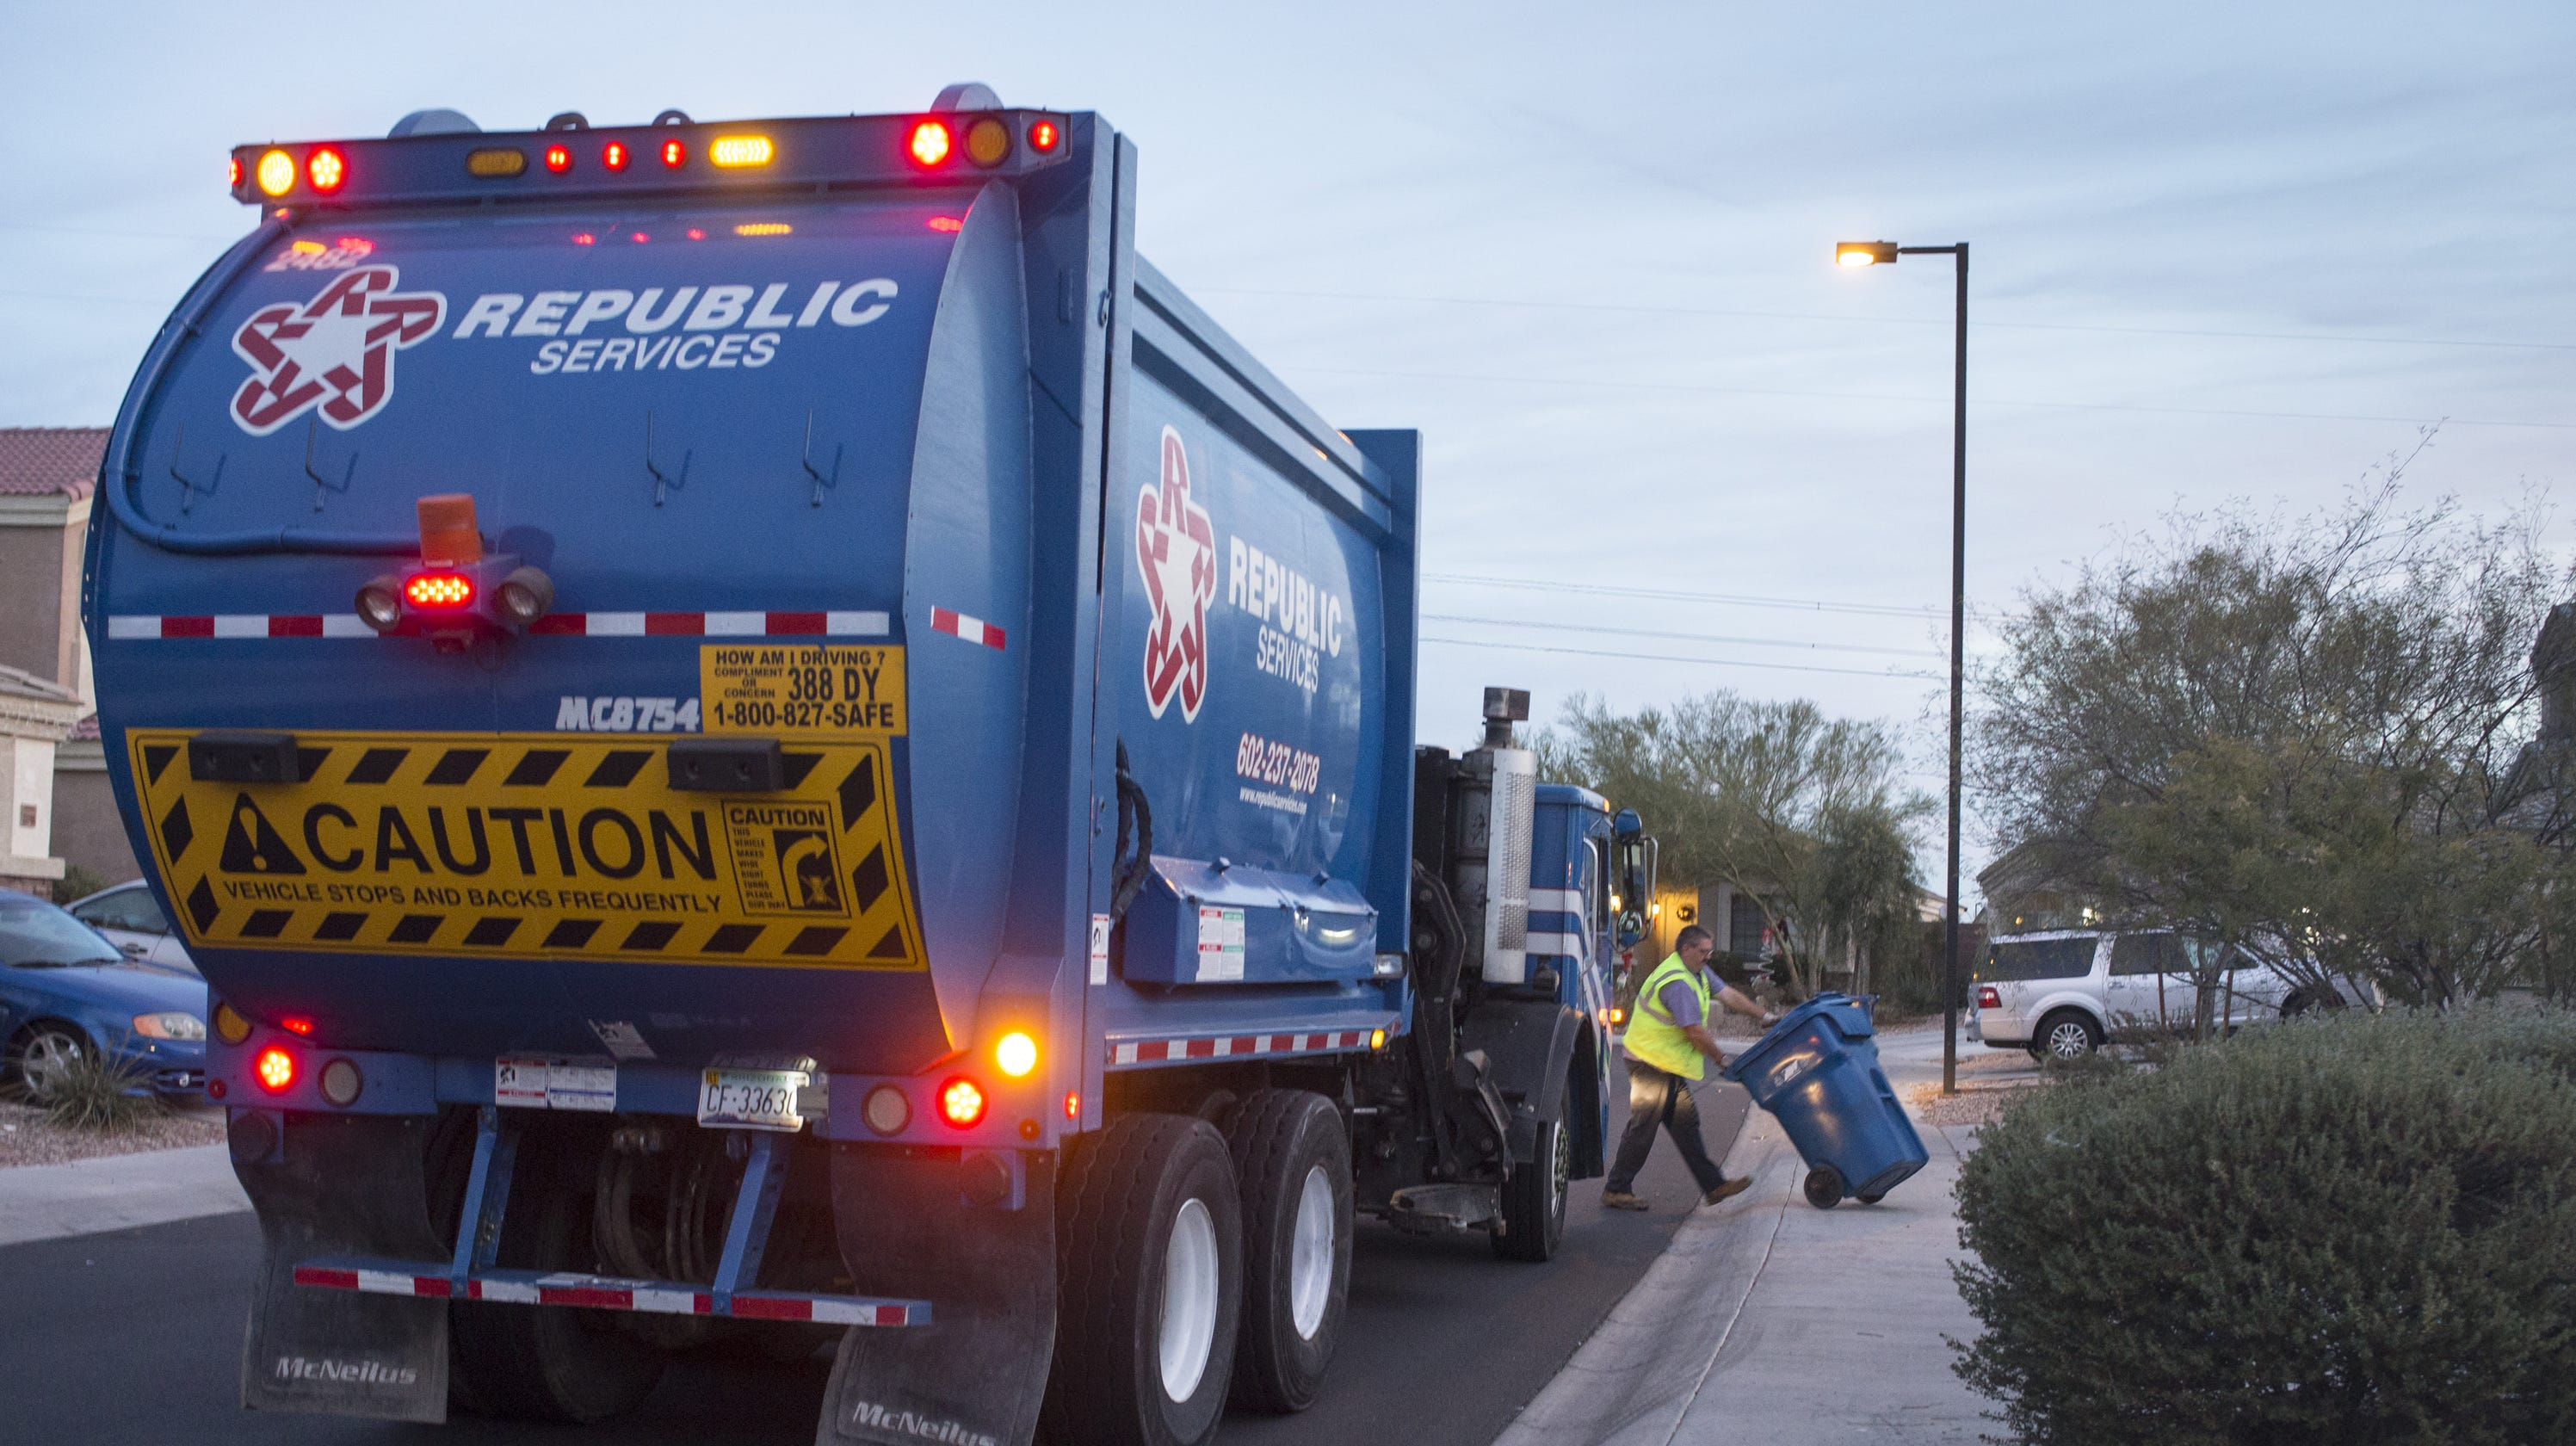 Republic Services Holiday Schedule 2020 Garbage collection in Hendersonville: Complaints rise as Republic